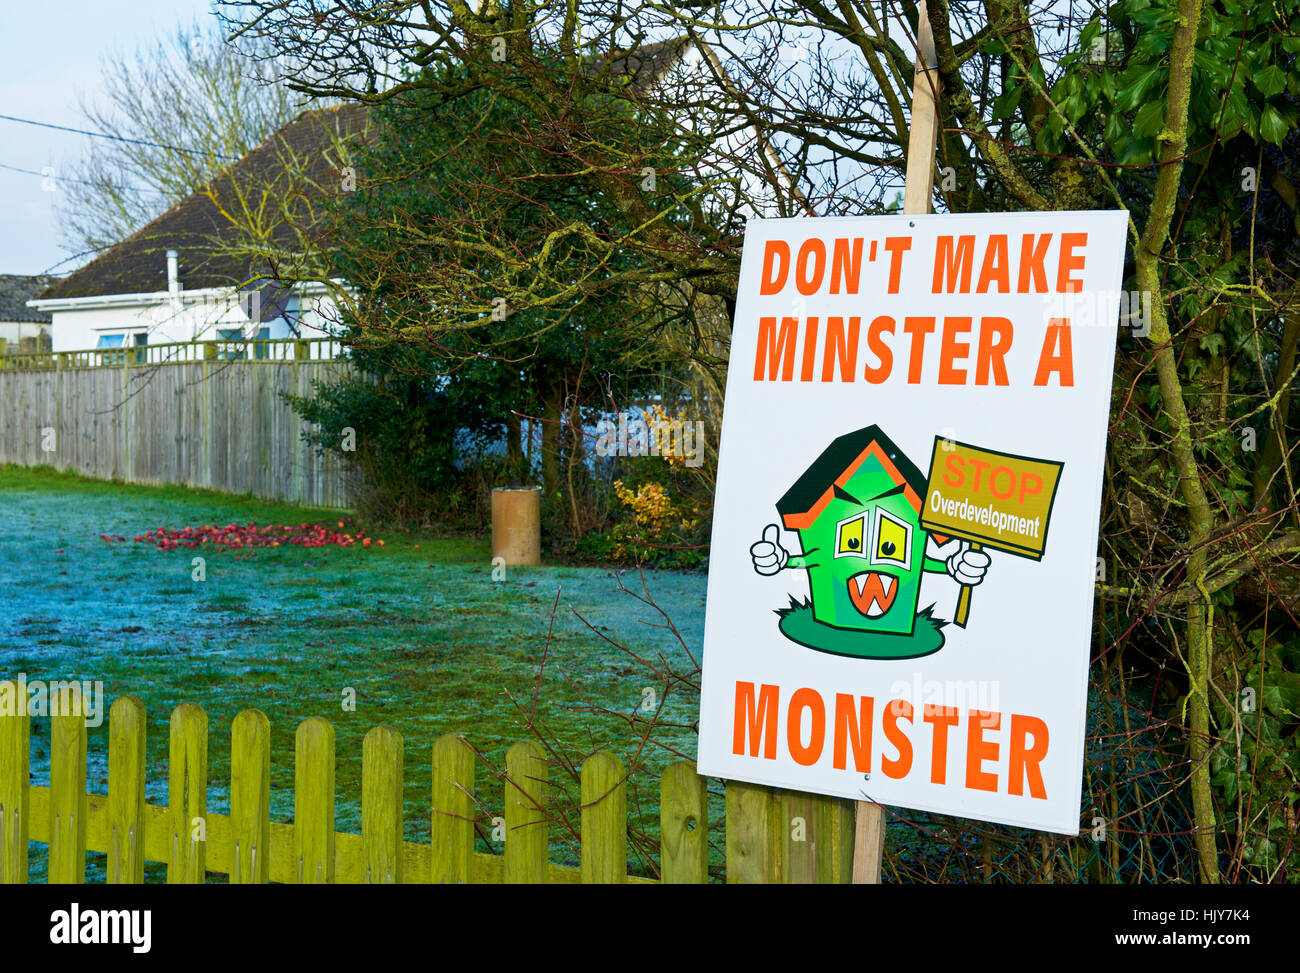 Sign protesting about building plans - Don't Make Minster a Monster - Minster Lovell, Oxfordshire, England UK - Stock Image